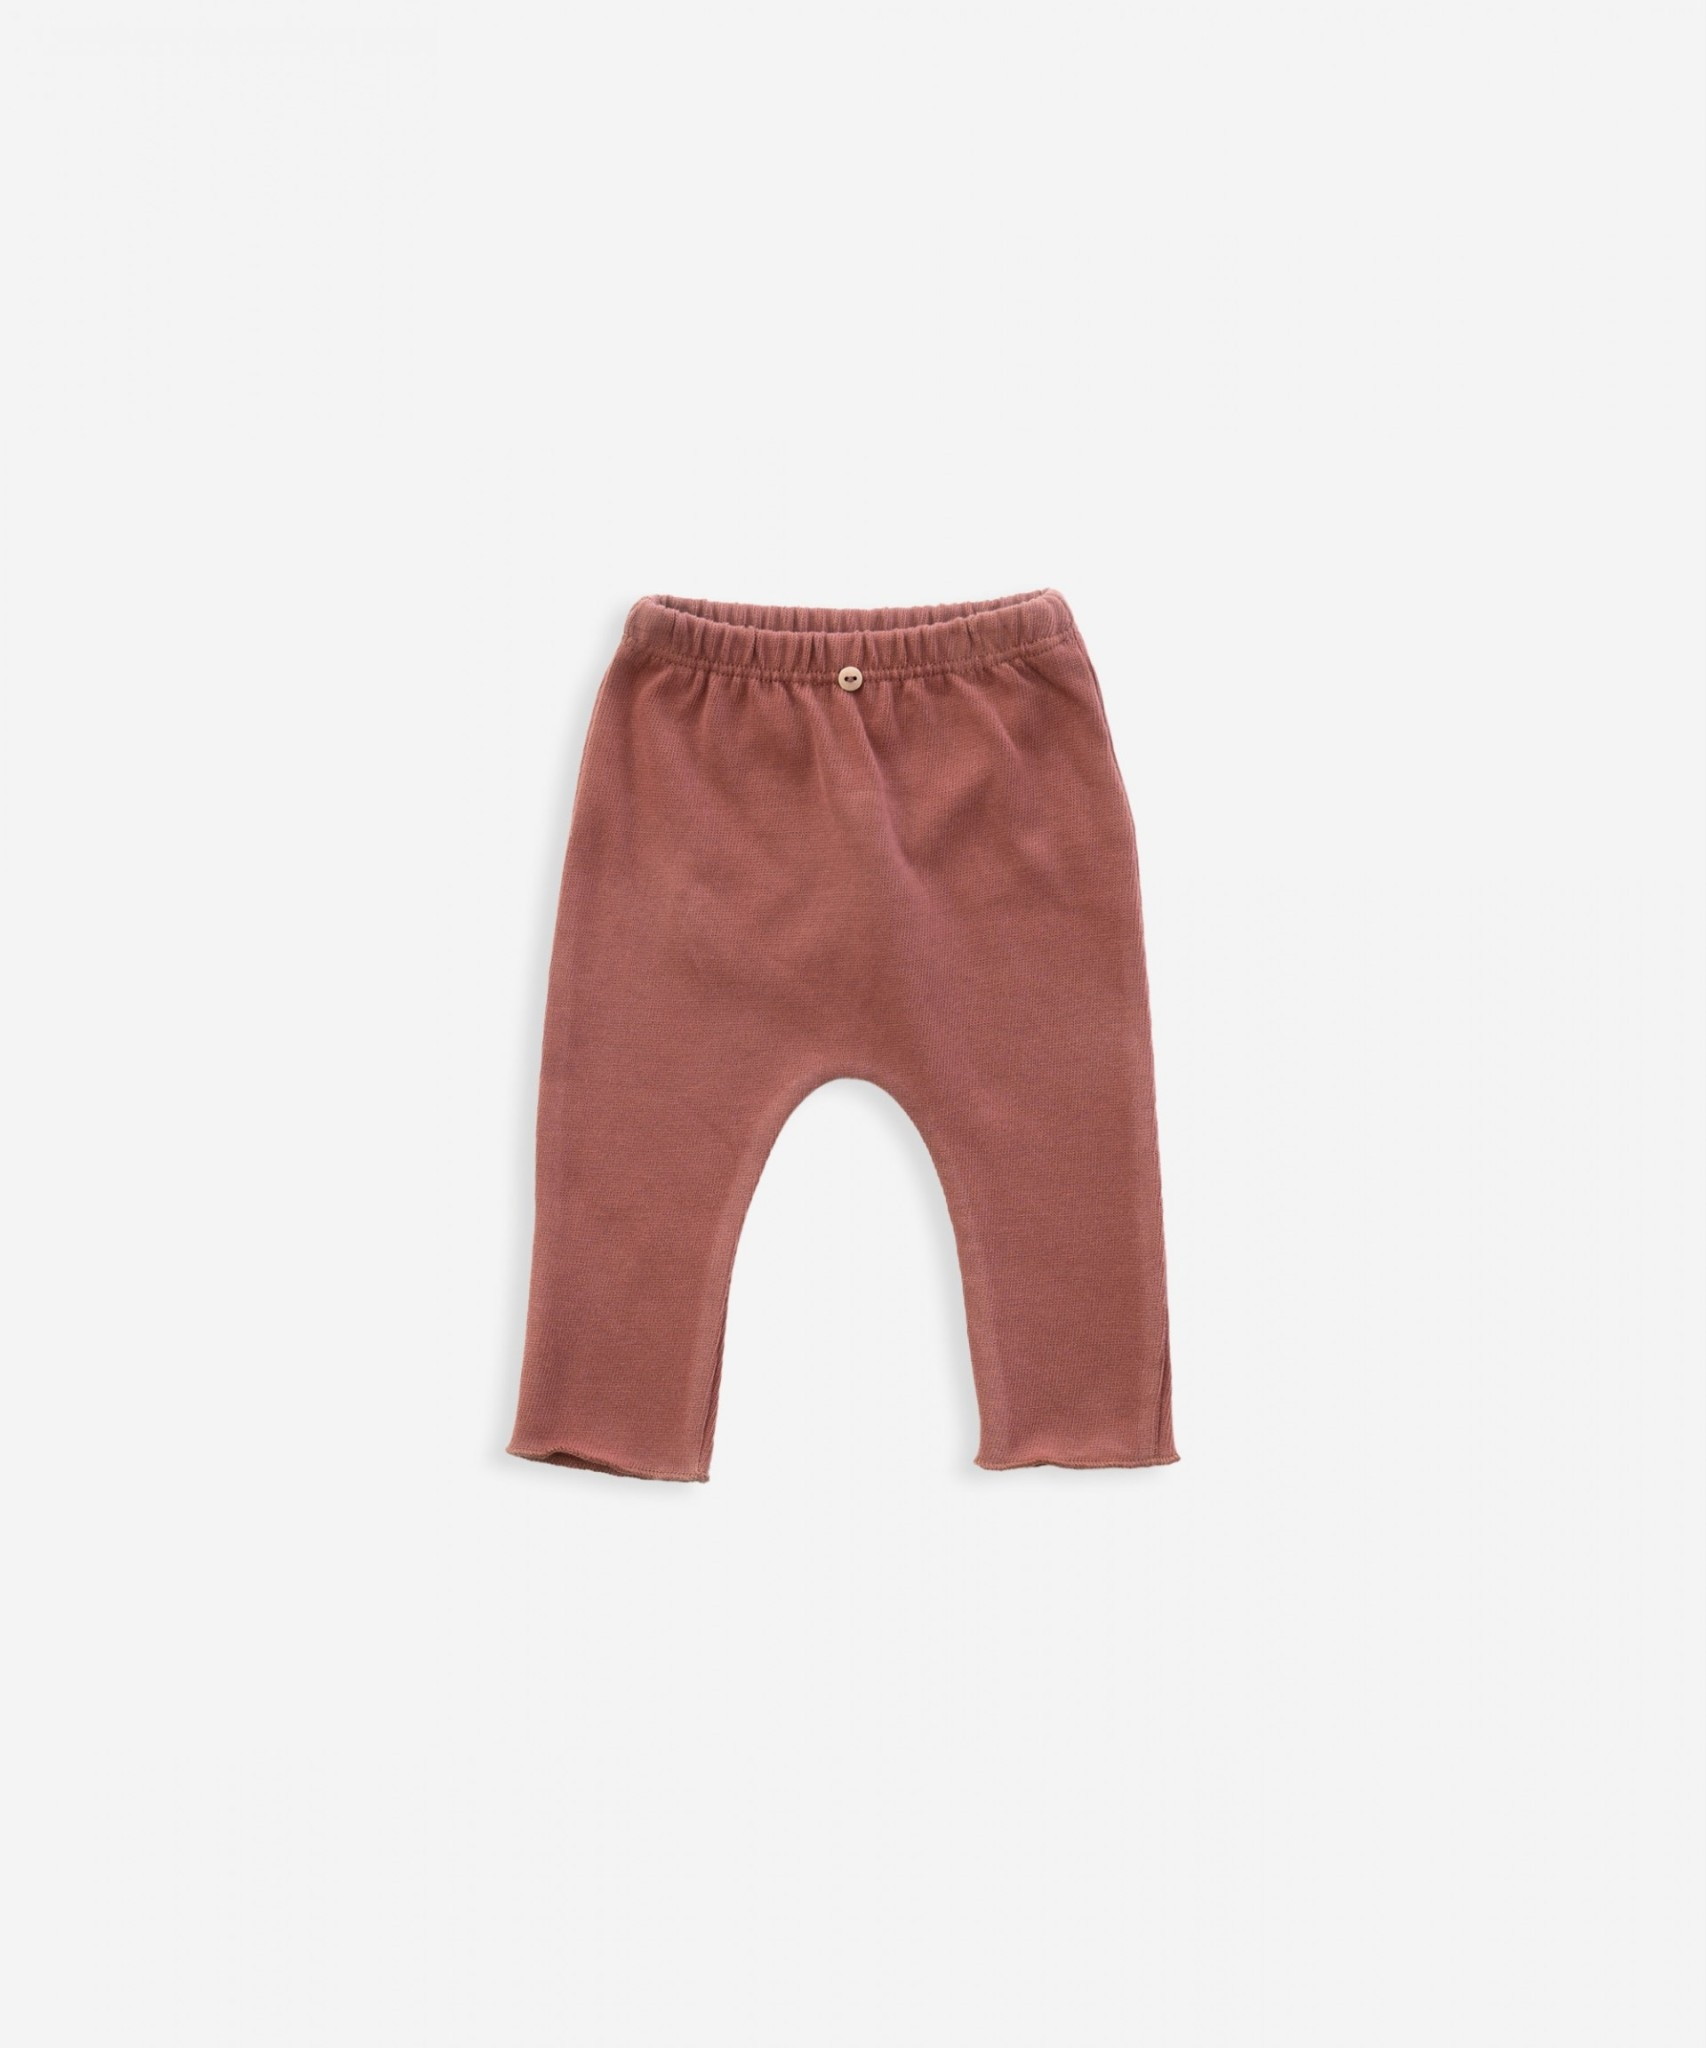 Play Up Play Up - Jersey Pants 0AG11600